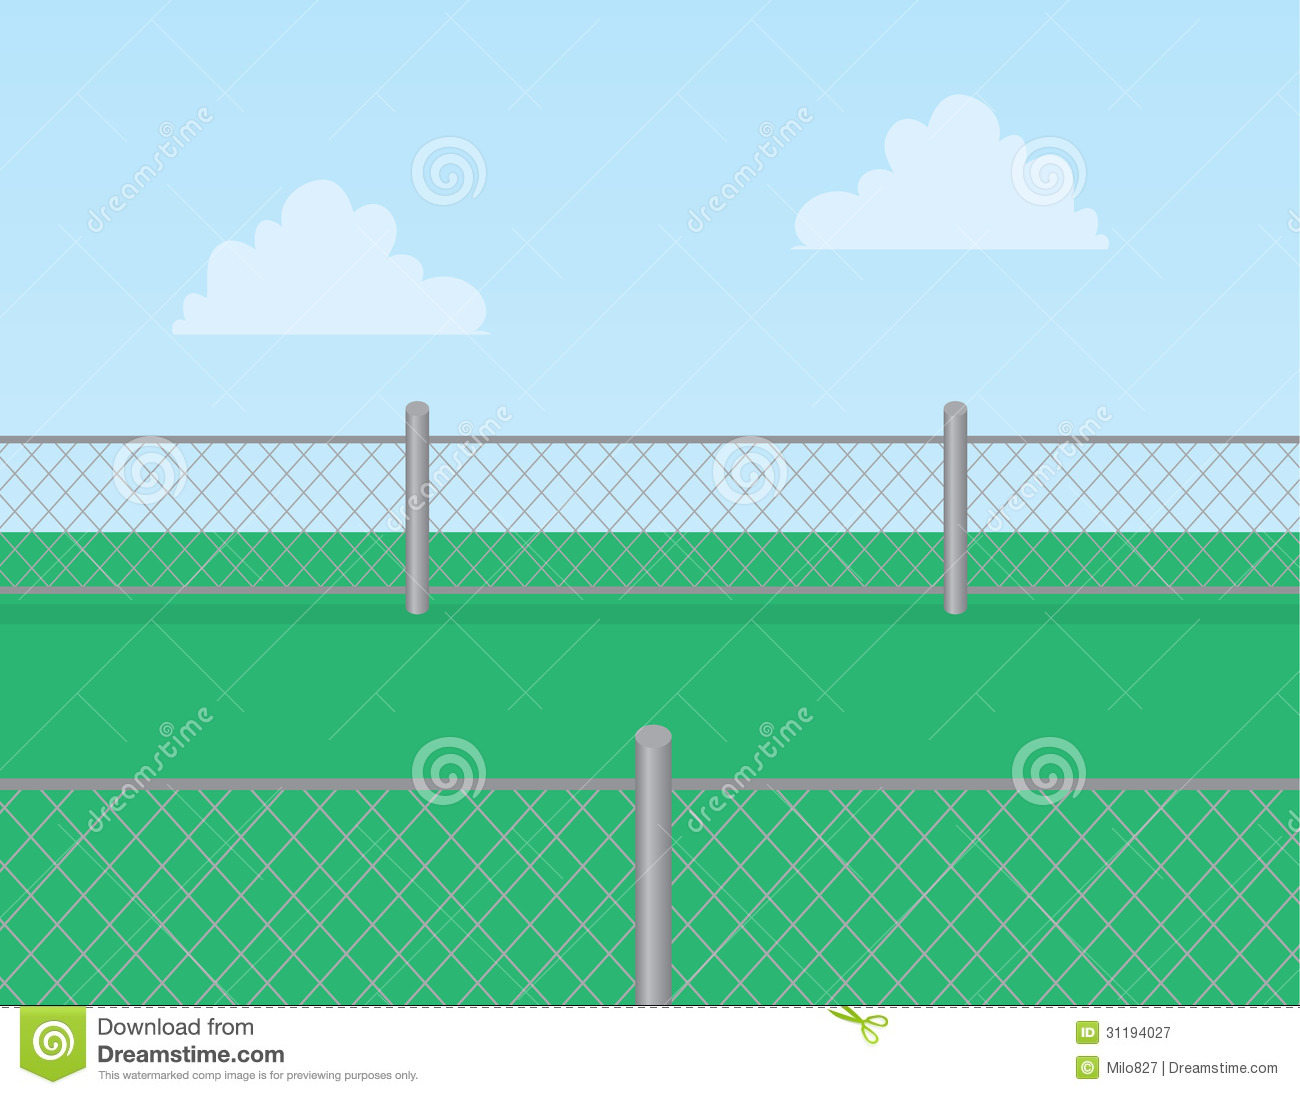 Chain Link Fence Grass Royalty Free Stock Photography - Image: 31194027